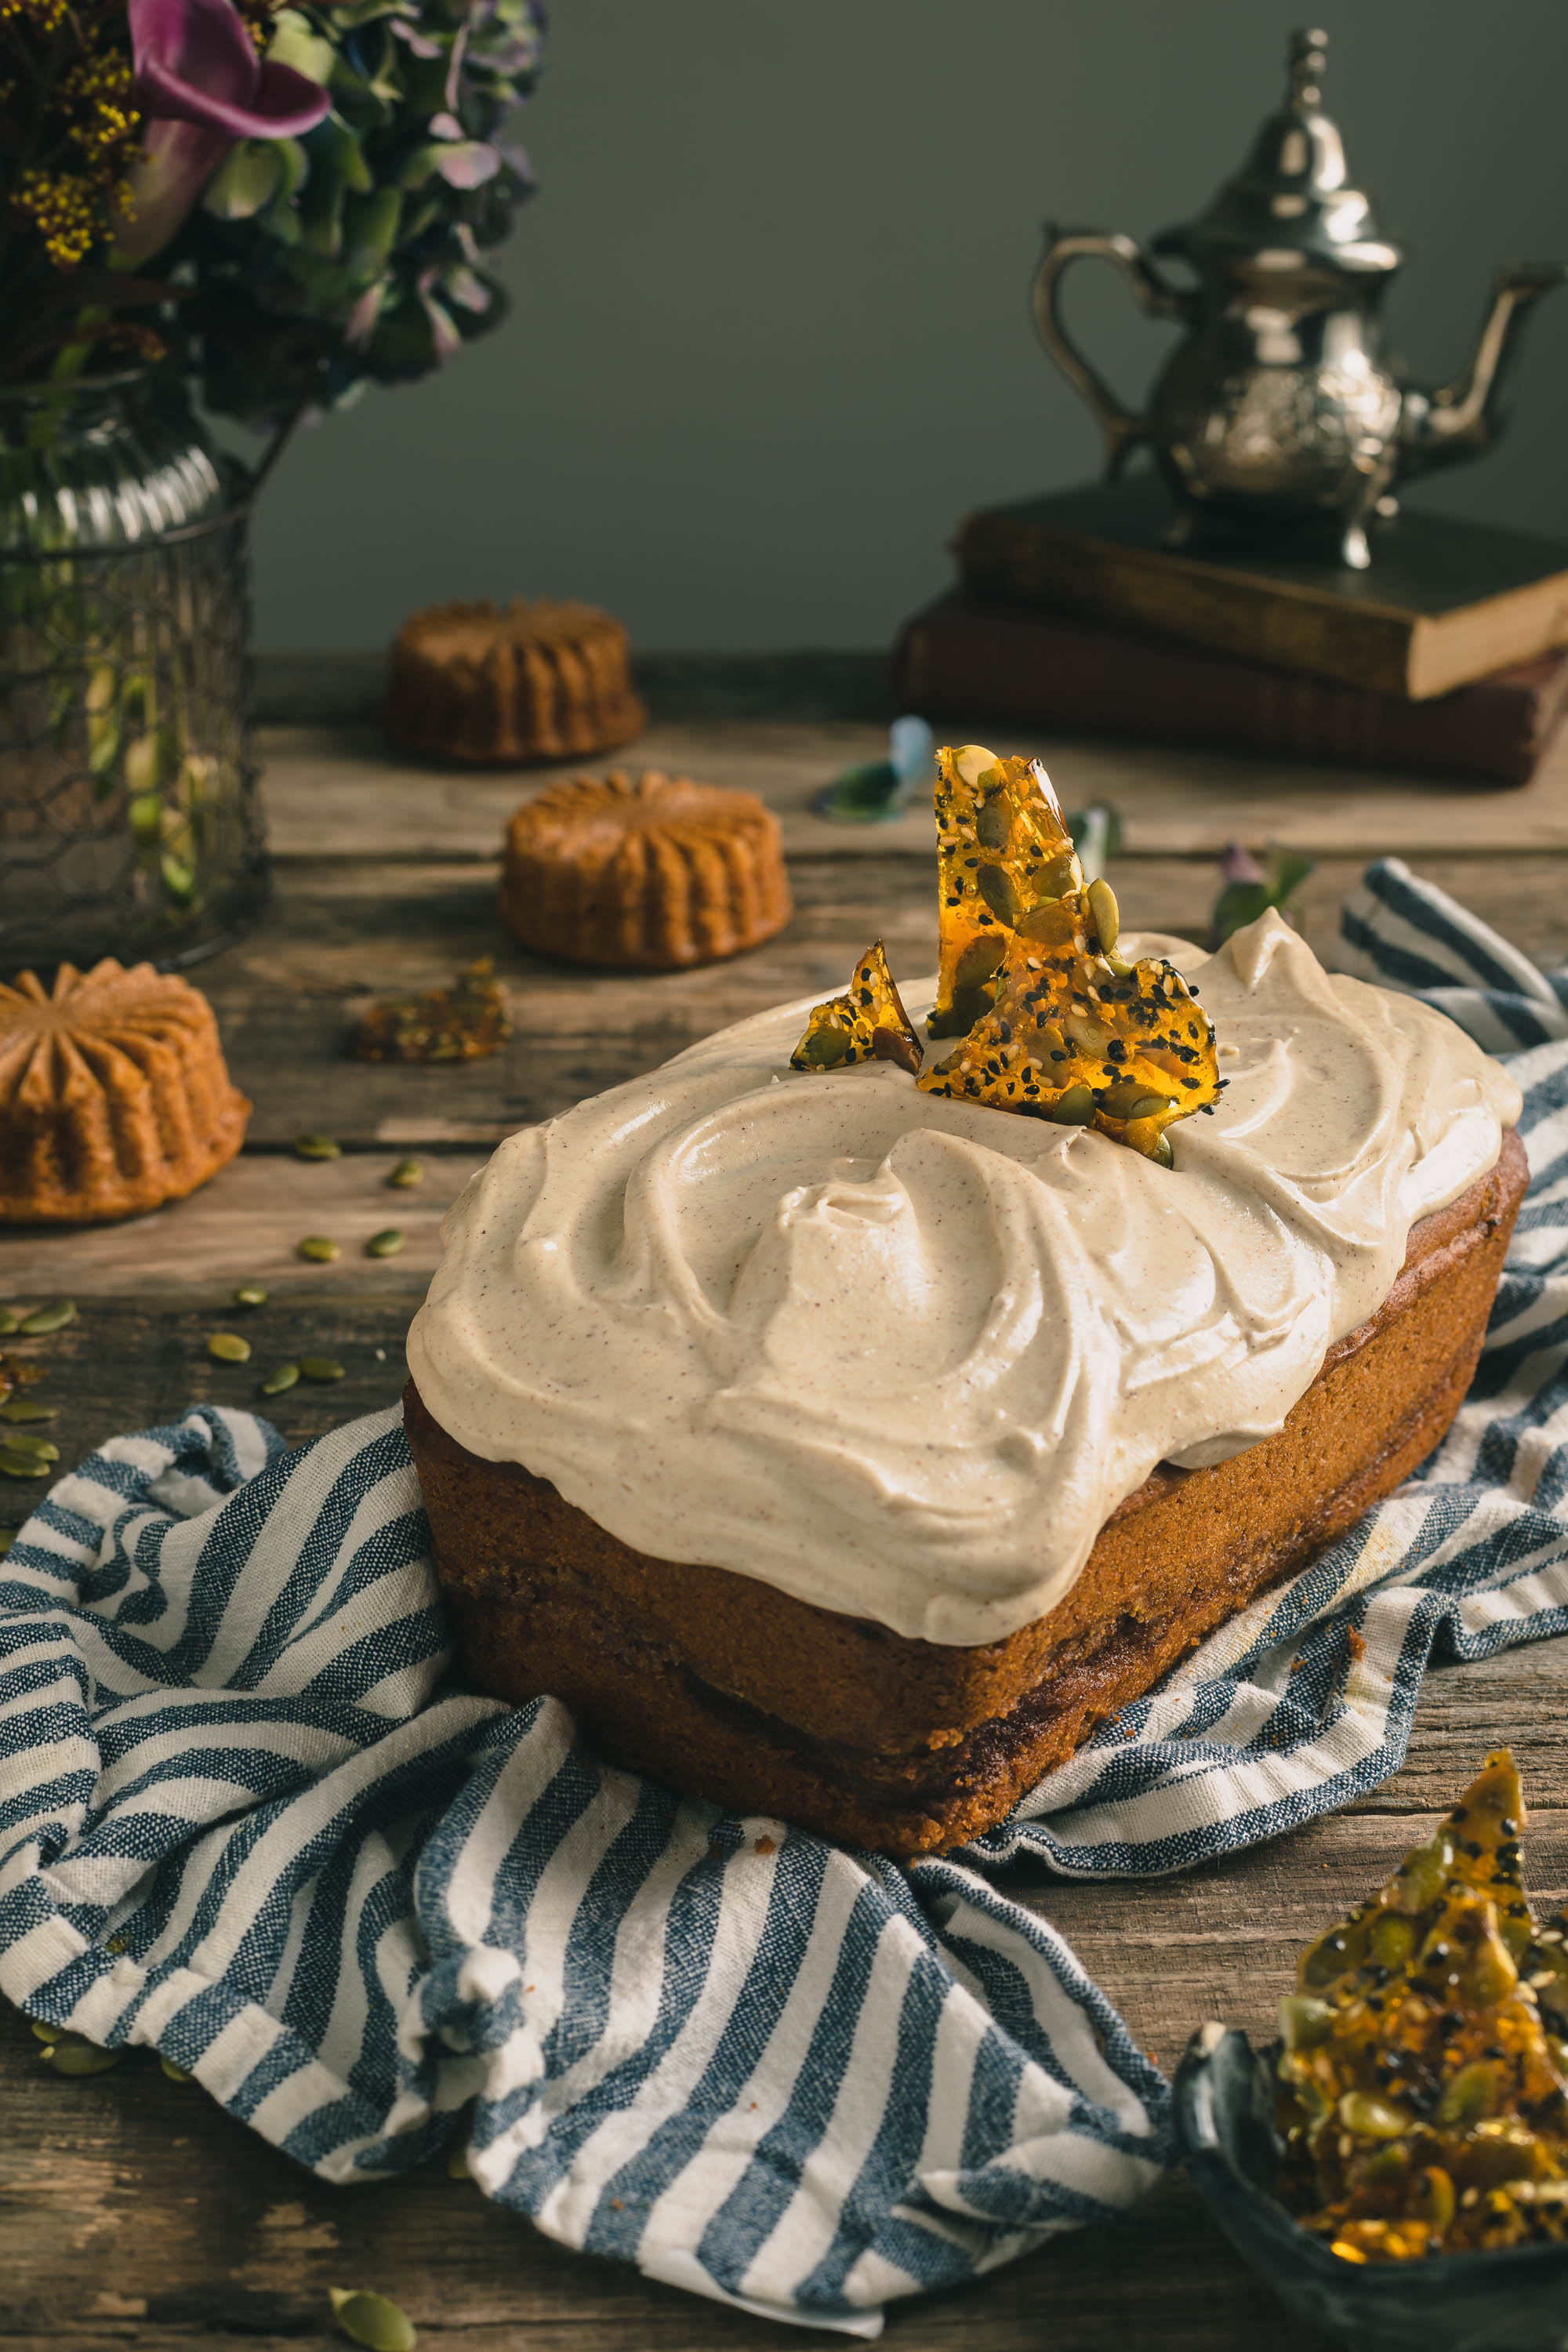 Pumpkin Bread with Maple & Brown Butter Cream Cheese Frosting - This moist & delicious pumpkin quickly bread is loaded with the warm & cozy spices that symbolize fall.  To up the decadence even more, it is topped with a thick layer of cream cheese frosting enhanced with the nuttiness of brown butter & the sweet and comforting flavor of maple syrup.  It's then crowned with sweet & crunchy pieces of Pumpkin & Sesame Seed Toffee.  The ultimate in fall baking.